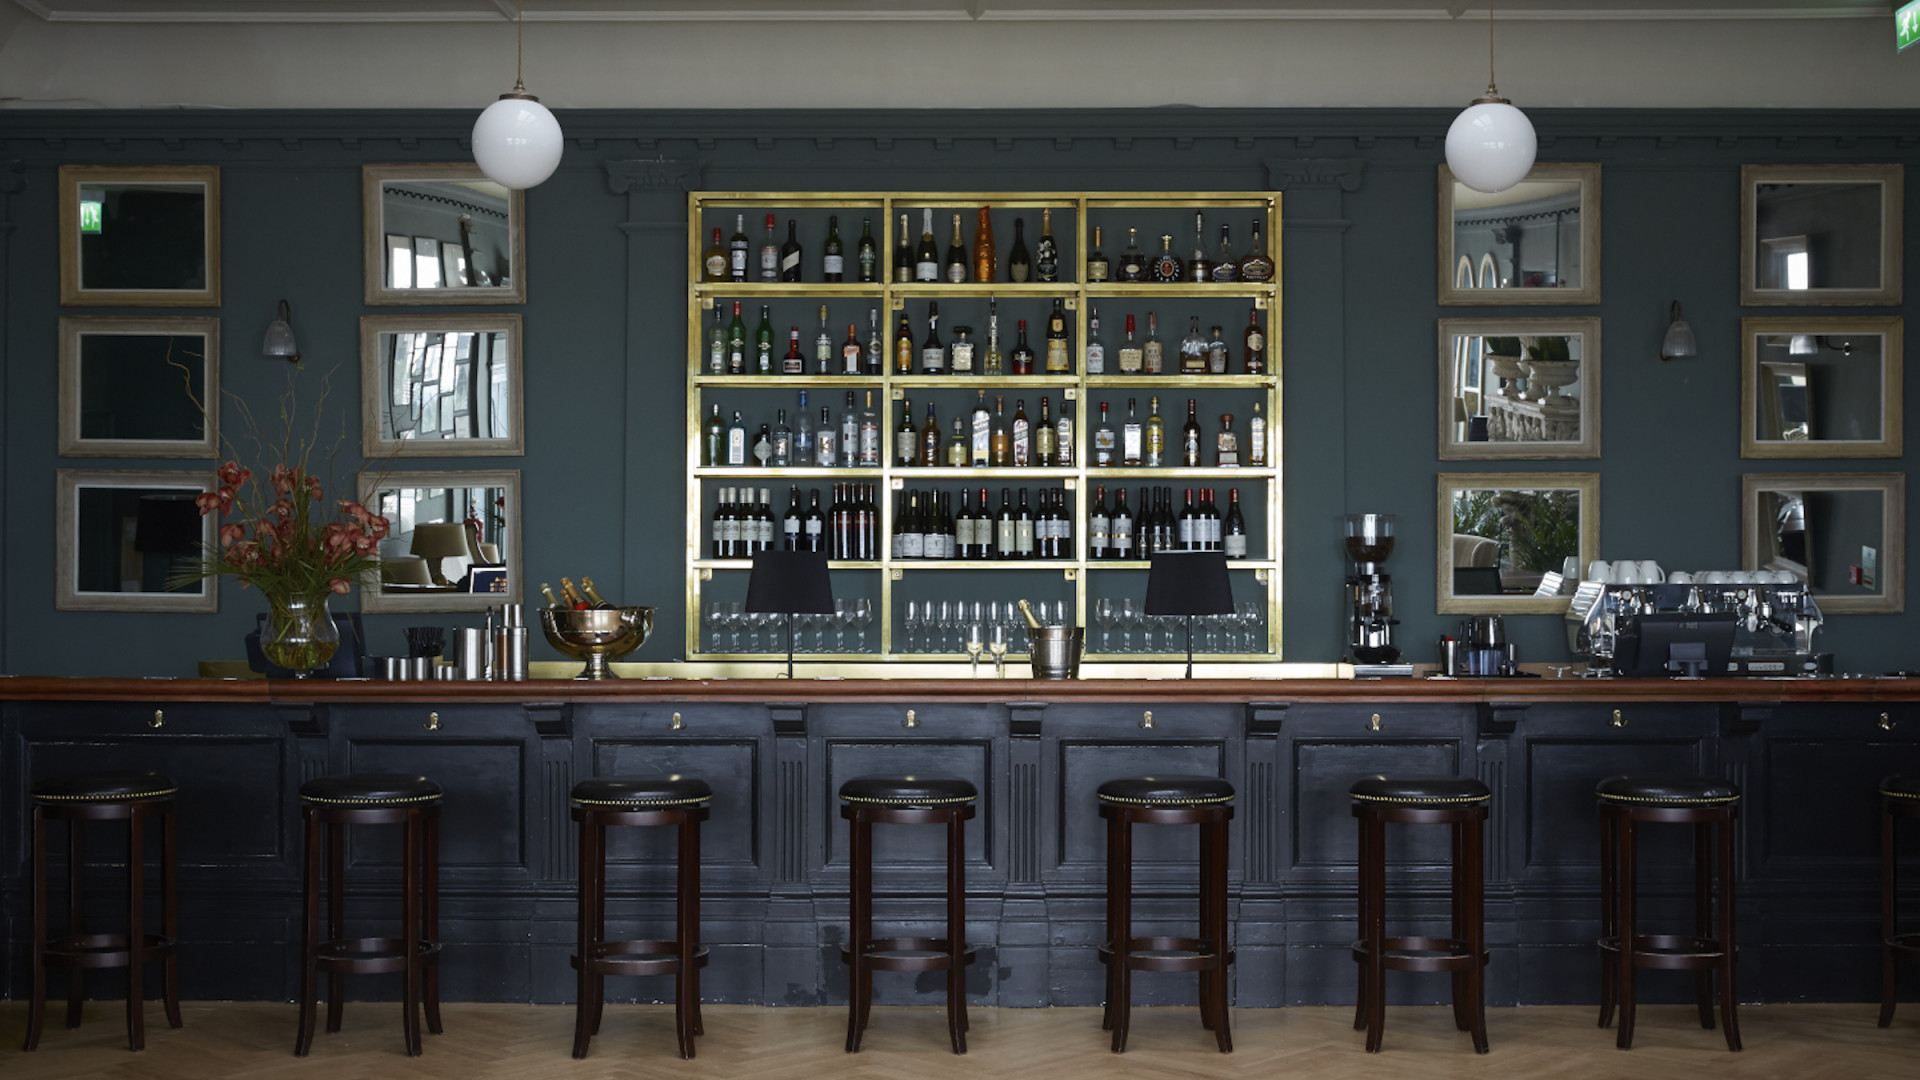 Albion House's extensively stocked bar